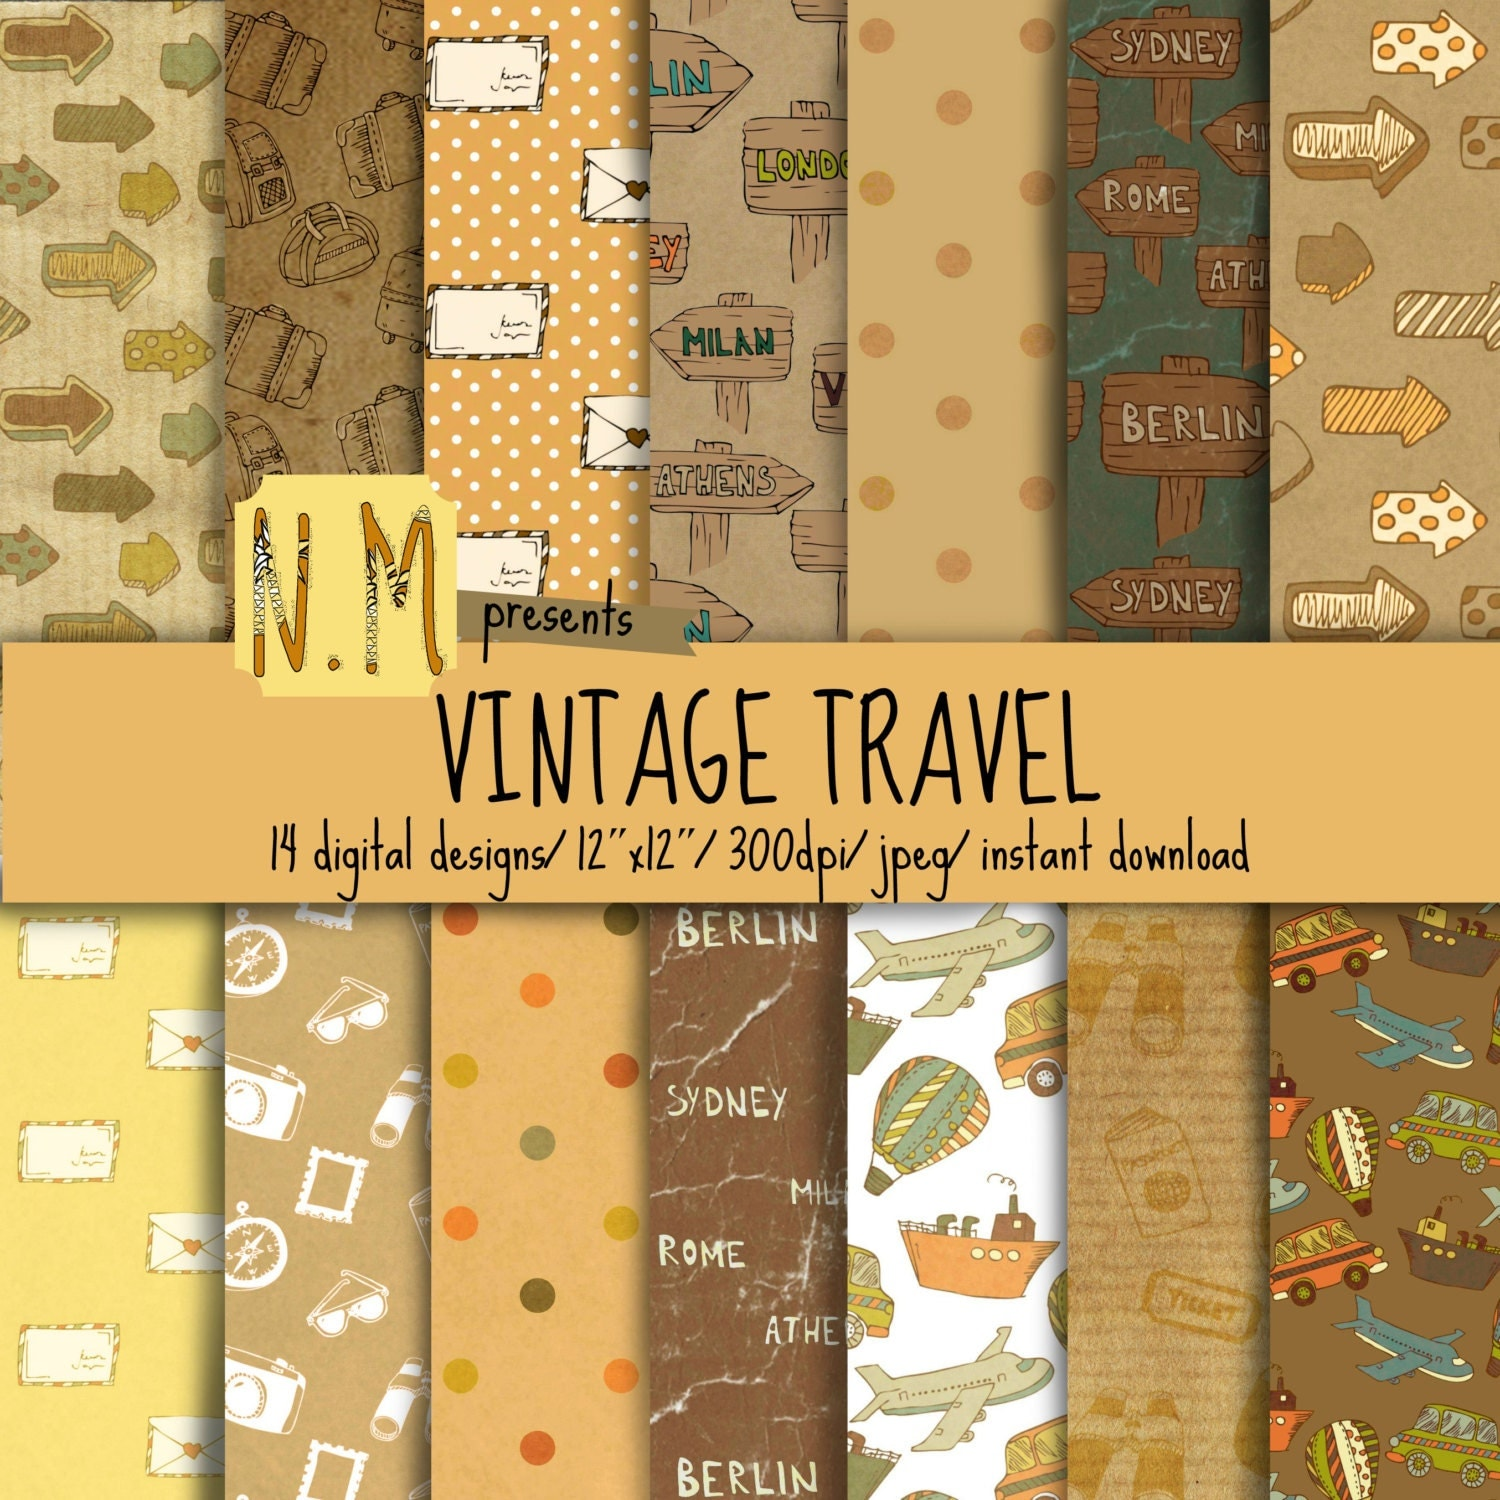 Vintage Travel Trailers: Vintage Travel Digital Paper Pack Travel Digital Pattern